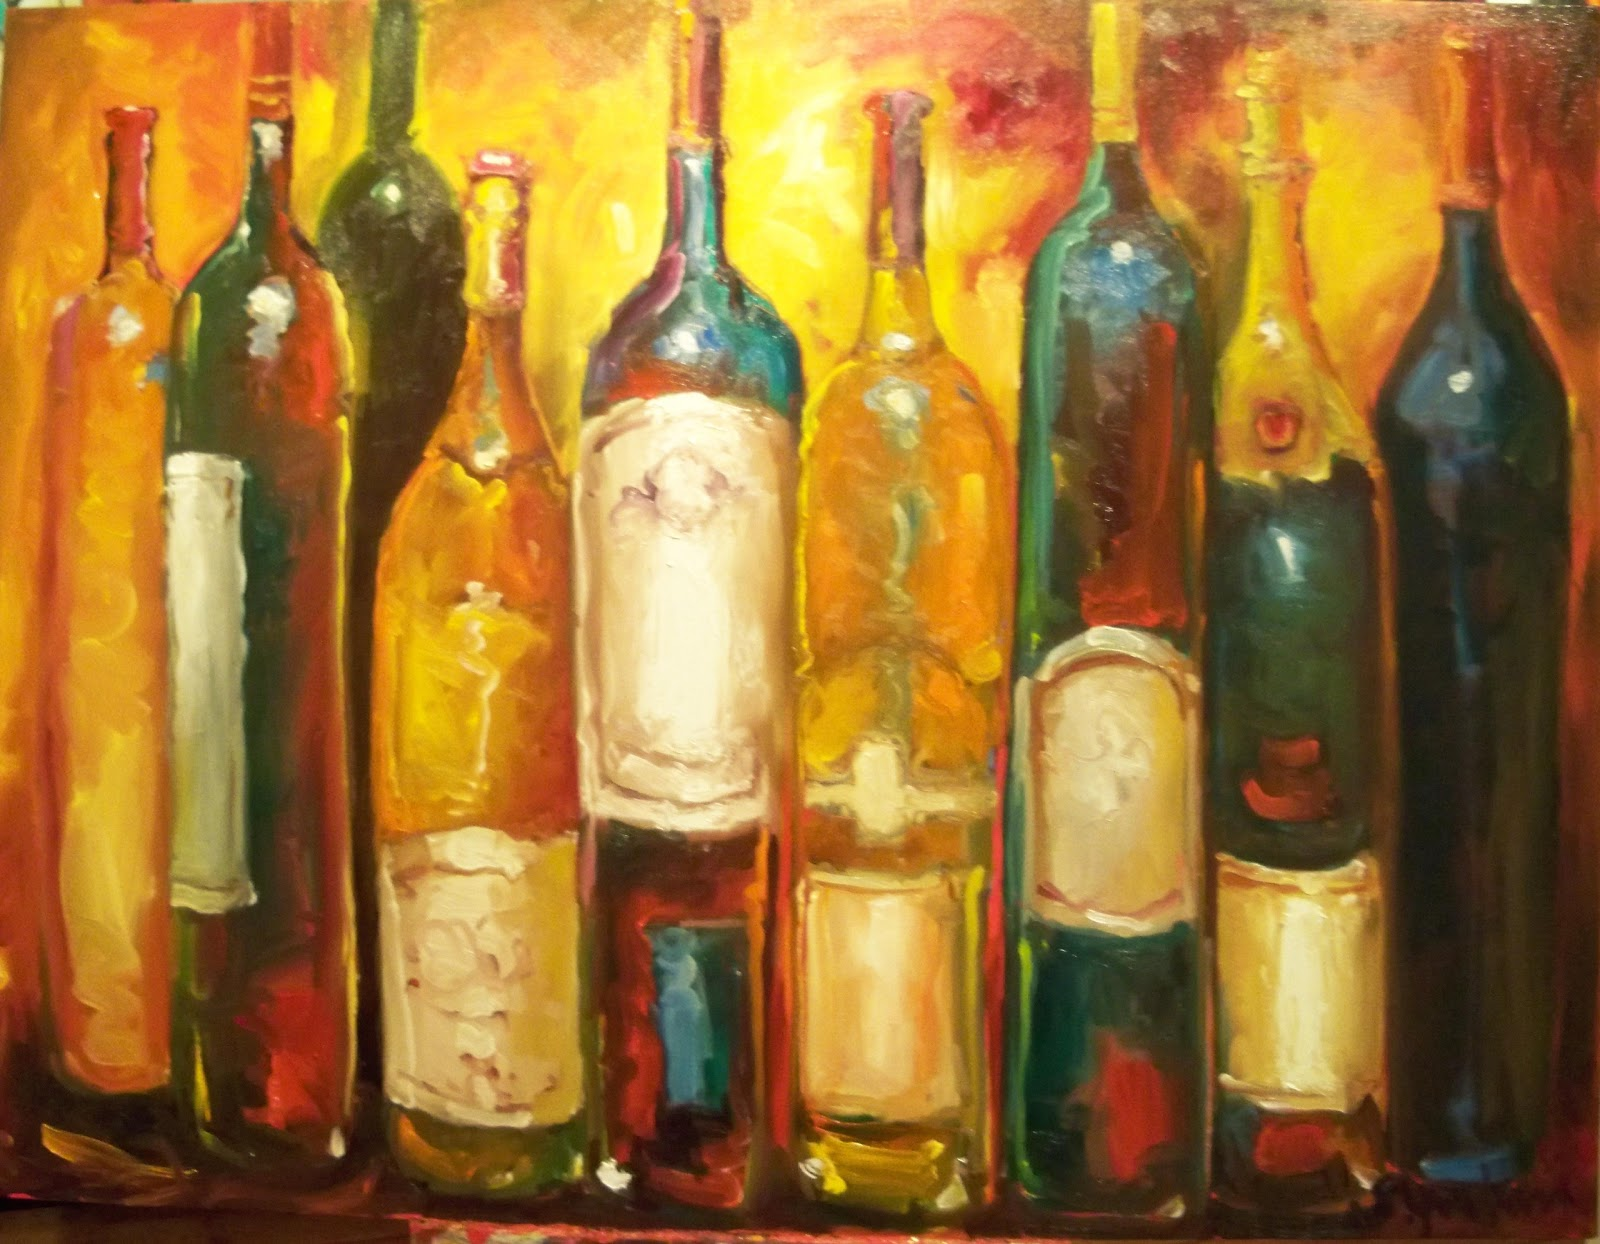 Susan jenkins morning paintings 1 9 11 1 16 11 for What kind of paint to use for wine bottles